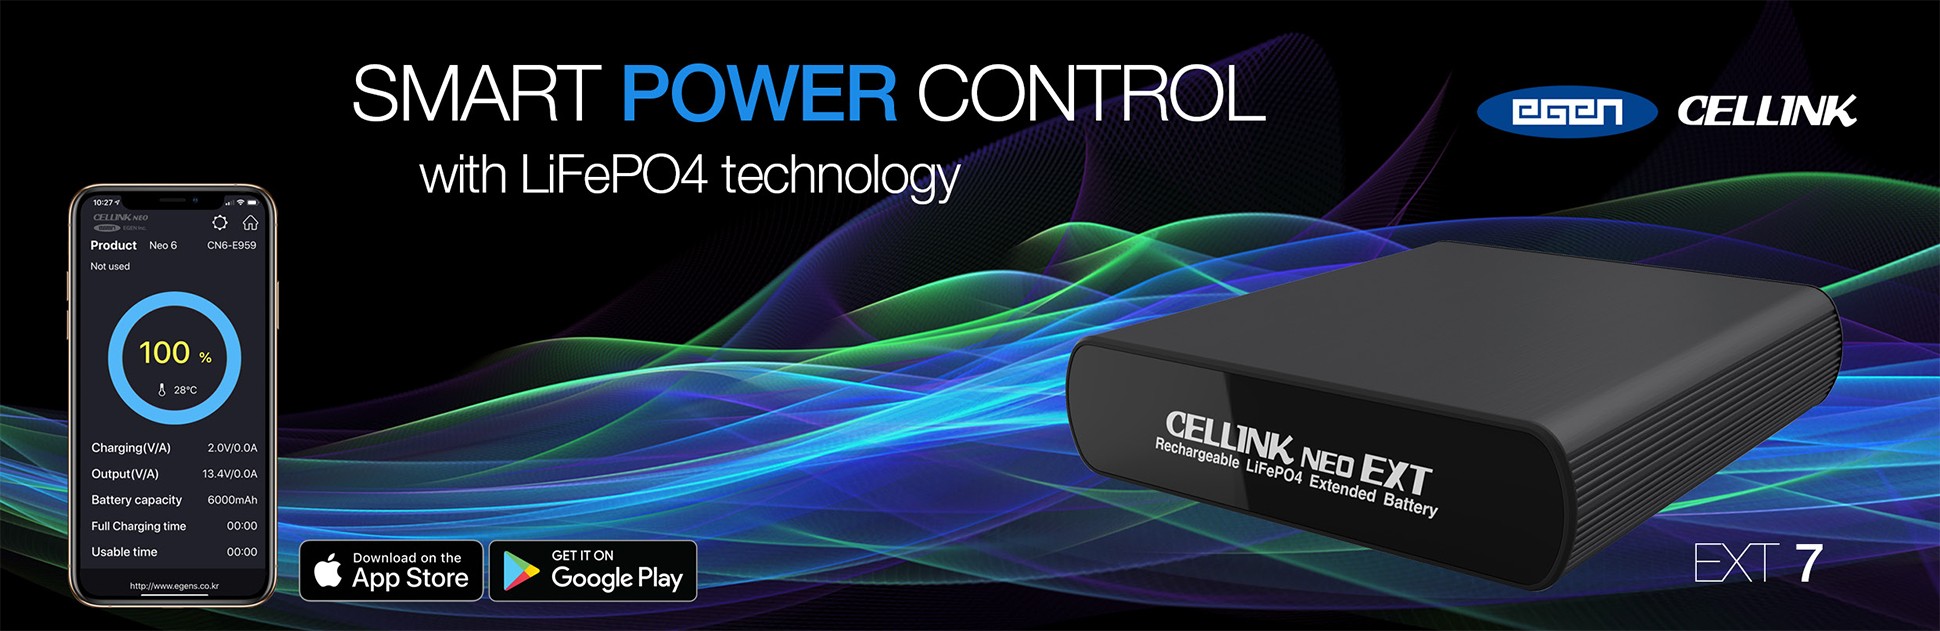 CELLINK NEO EX7 The Ultimate Supplementary Dash Cam Power Source.